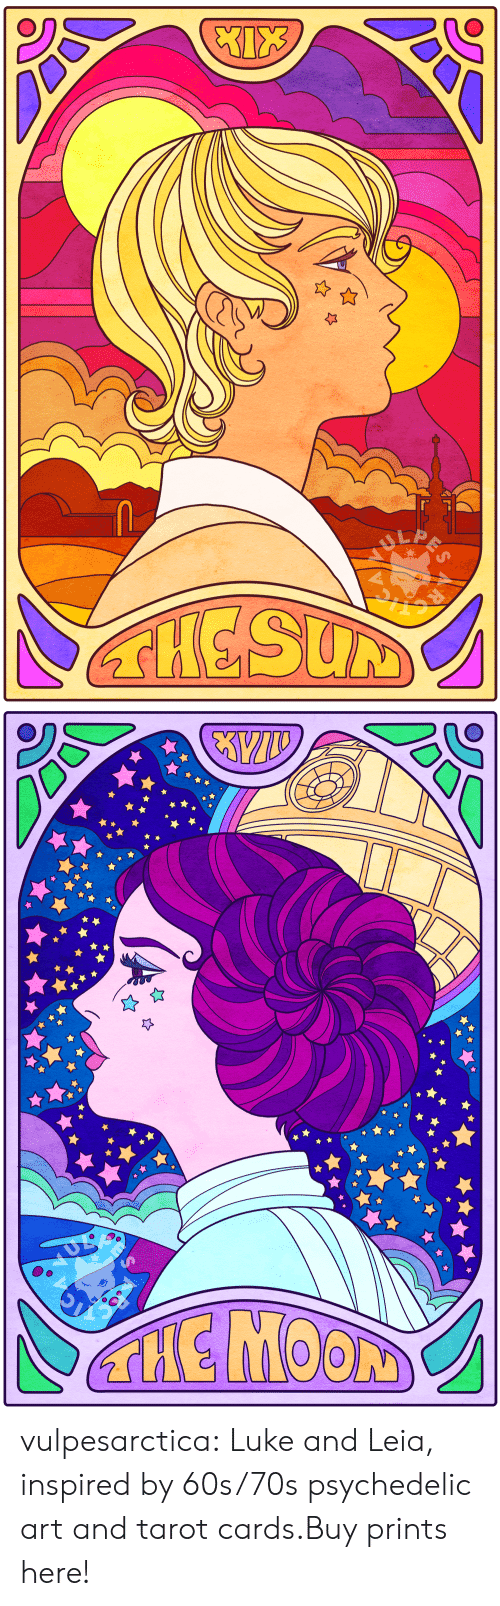 psychedelic: LA  THESUM   THE MOON vulpesarctica:  Luke and Leia, inspired by 60s/70s psychedelic art and tarot cards.Buy prints here!